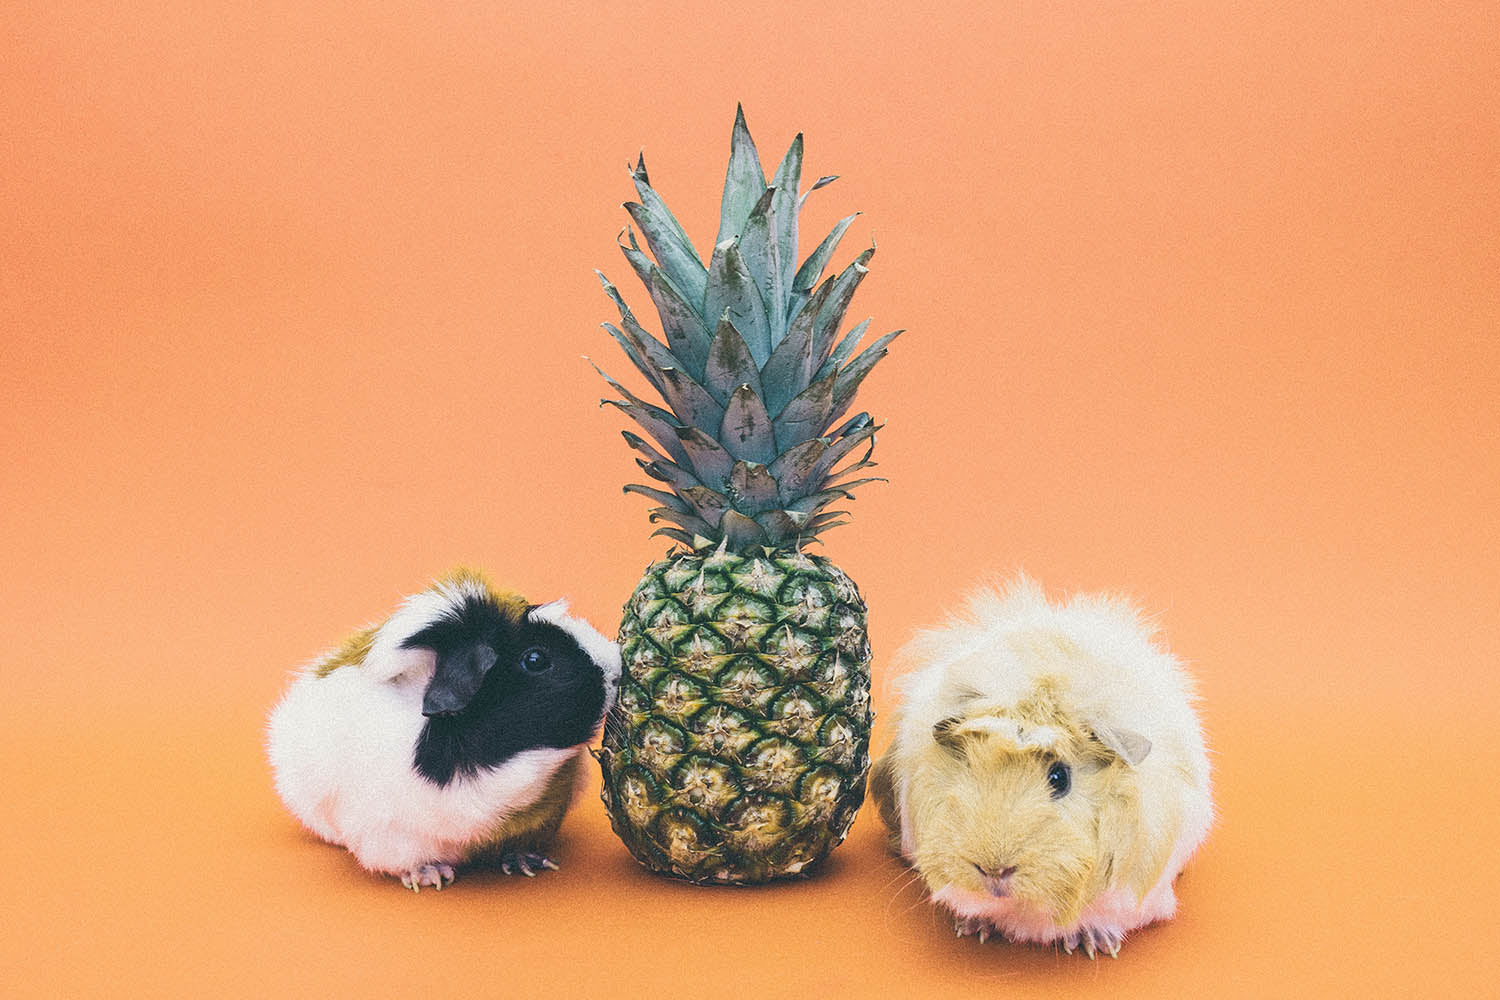 A pineapple standing up in between a white and black guinea pig and a tan colored guinea pig.